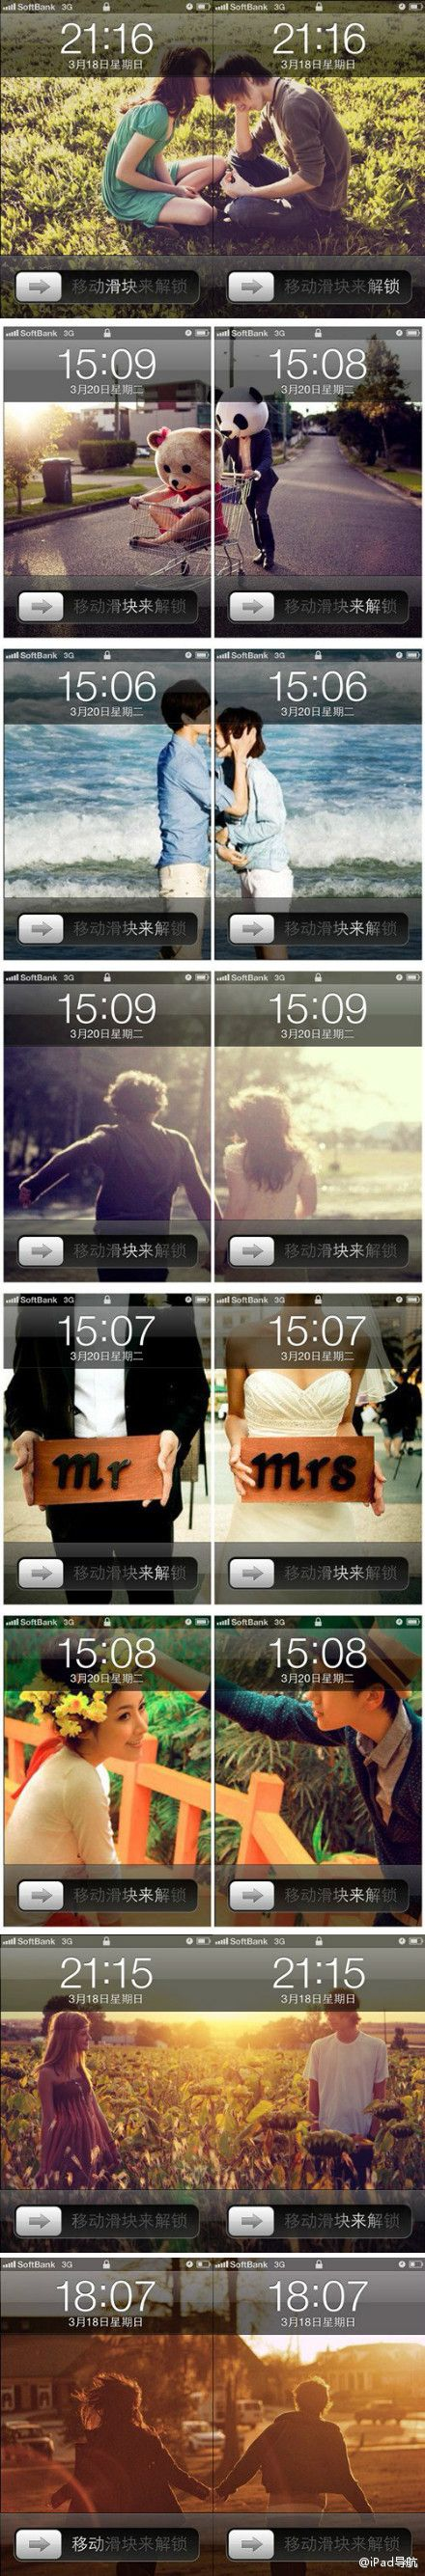 His & Her's, cell phone backgrounds of their couple pictures split to see the significant other, when the phones are set next to each other it is the whole/entire/original pictures -- I don't think this is suppose to be funny, but I can't help but imagine the Overprotective GF meme. Lolololol